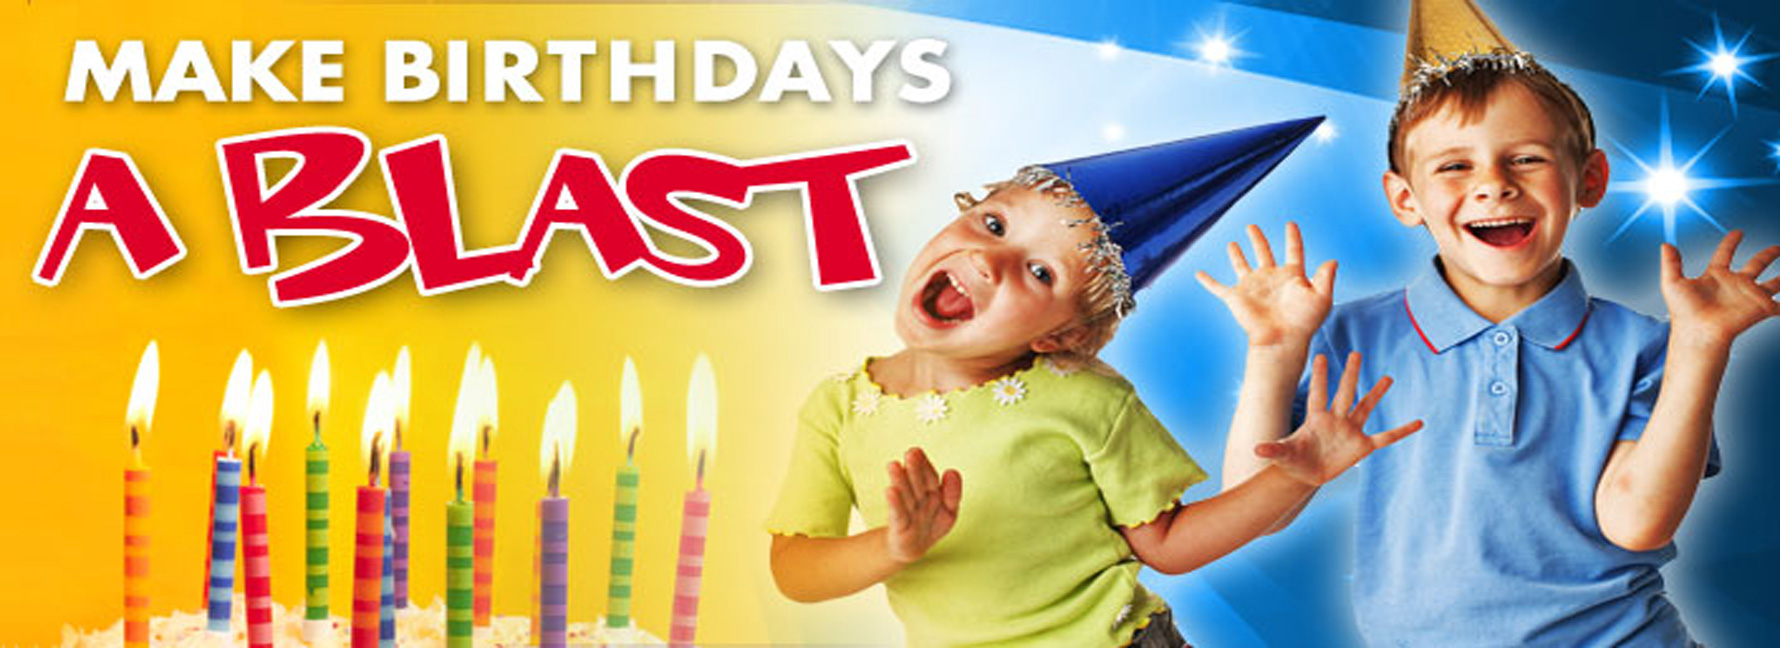 Make Birthdays a Blast